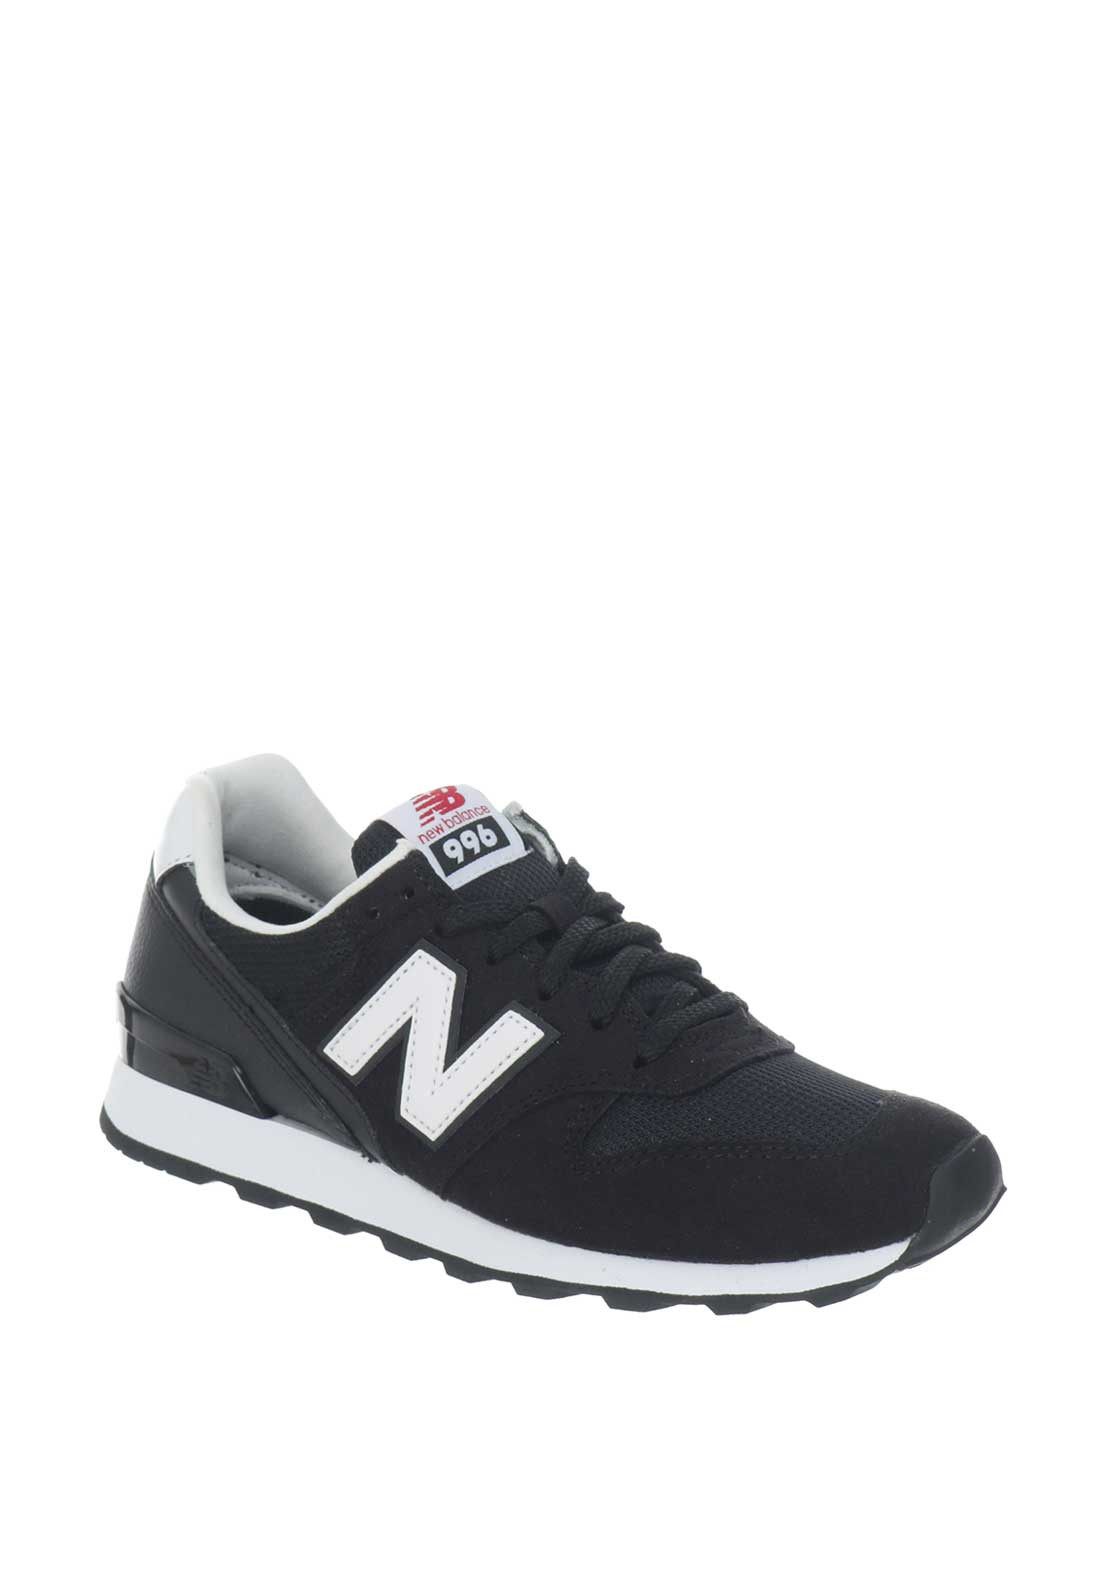 New Balance Womens Suede 996 Runners, Black